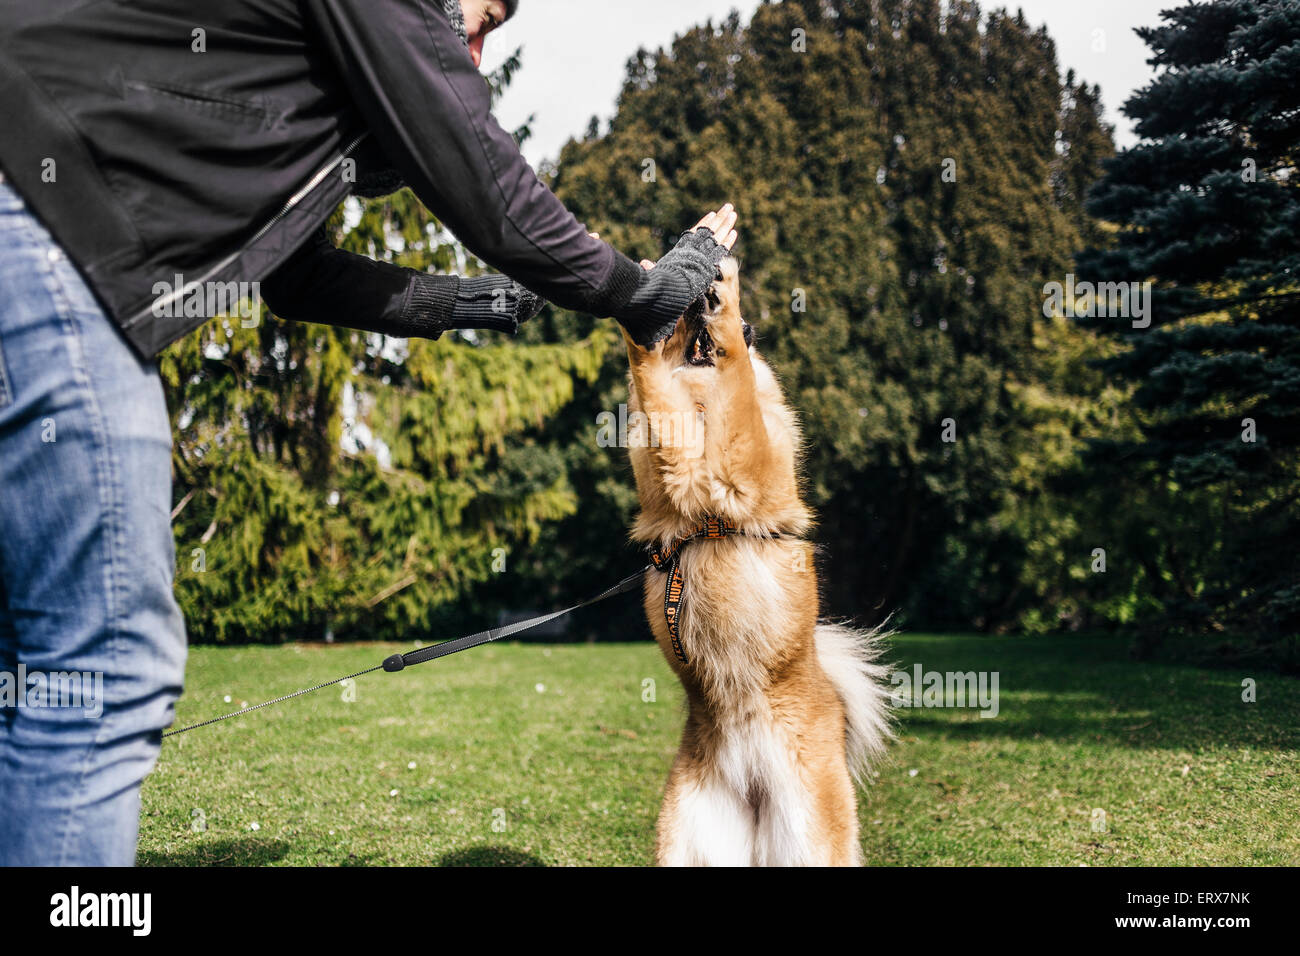 Young man giving high five to Eurasier at park - Stock Image